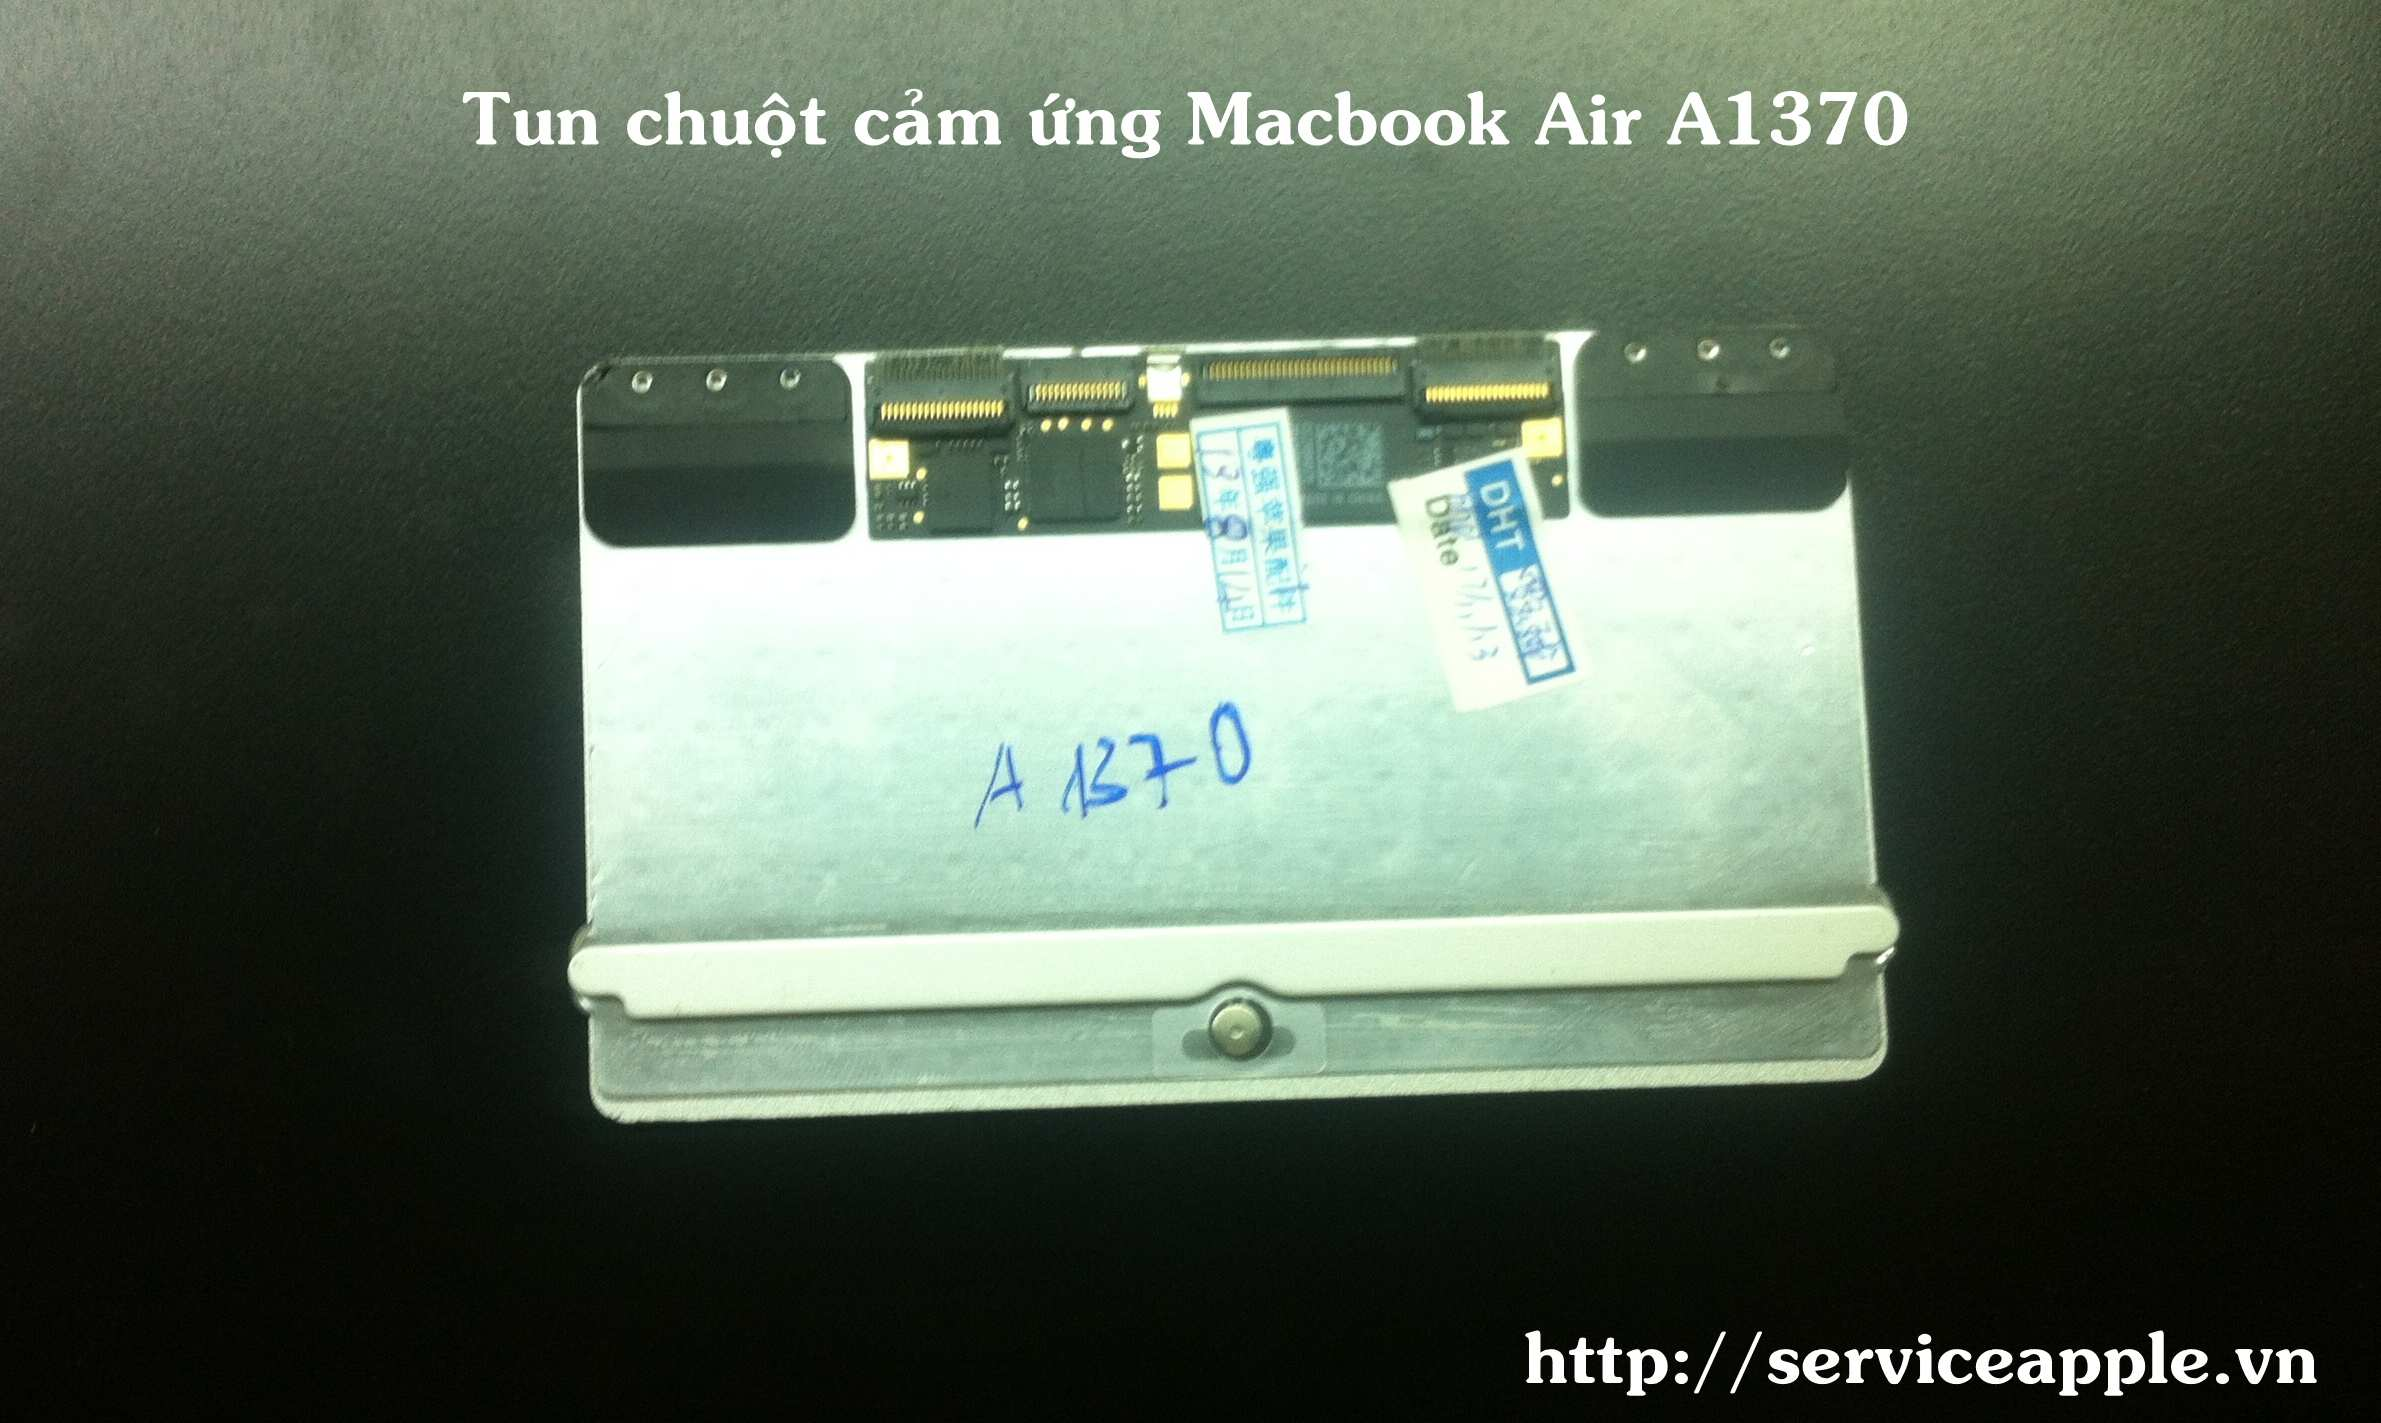 Tun chuot macbook Air A1370.JPG